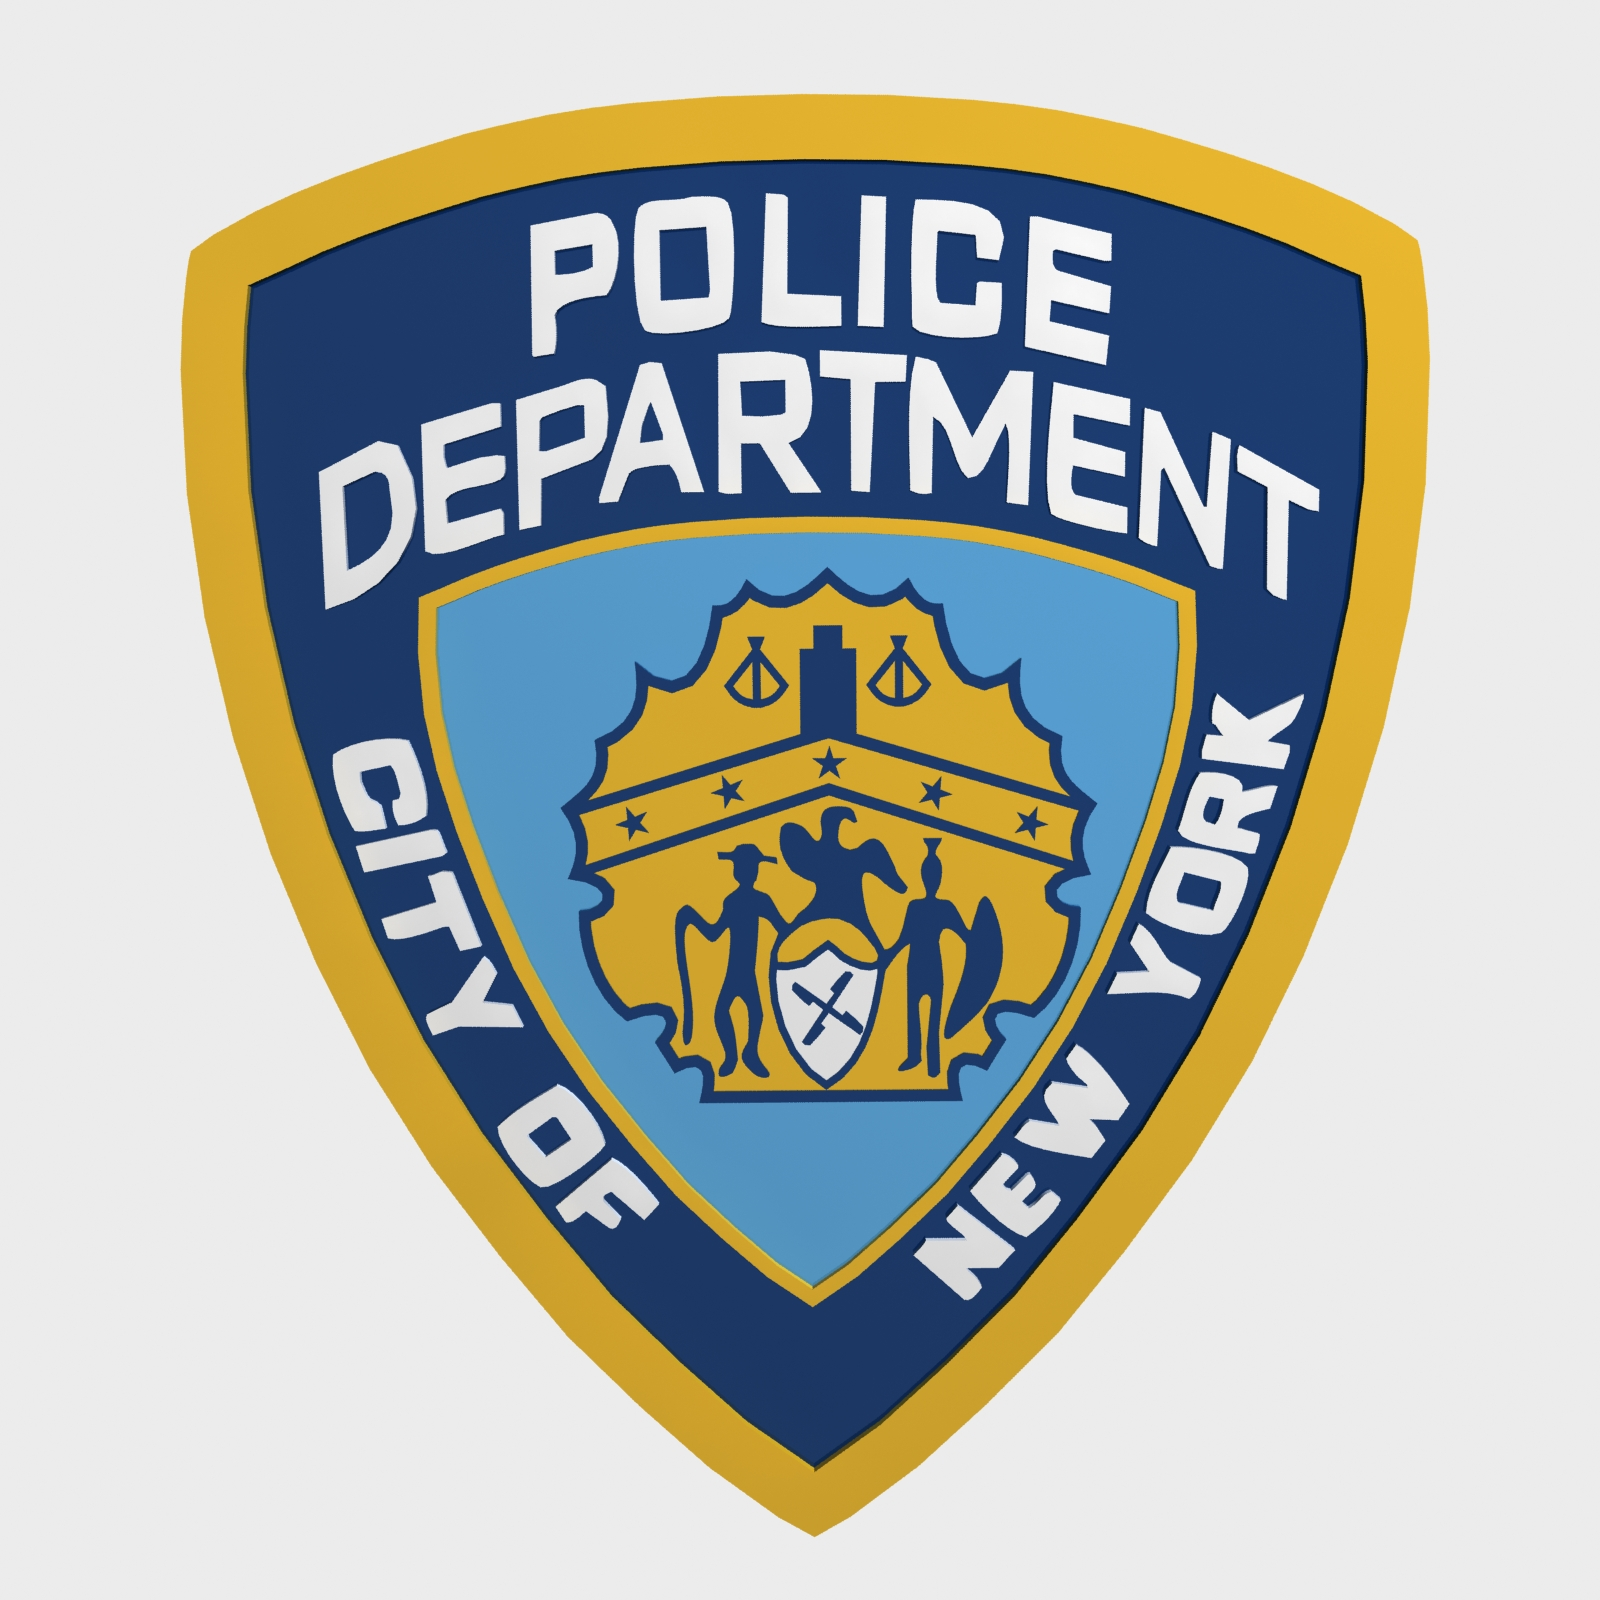 nypd police department logo by polygon3d 3docean rh 3docean net nypd login nypd logo vector